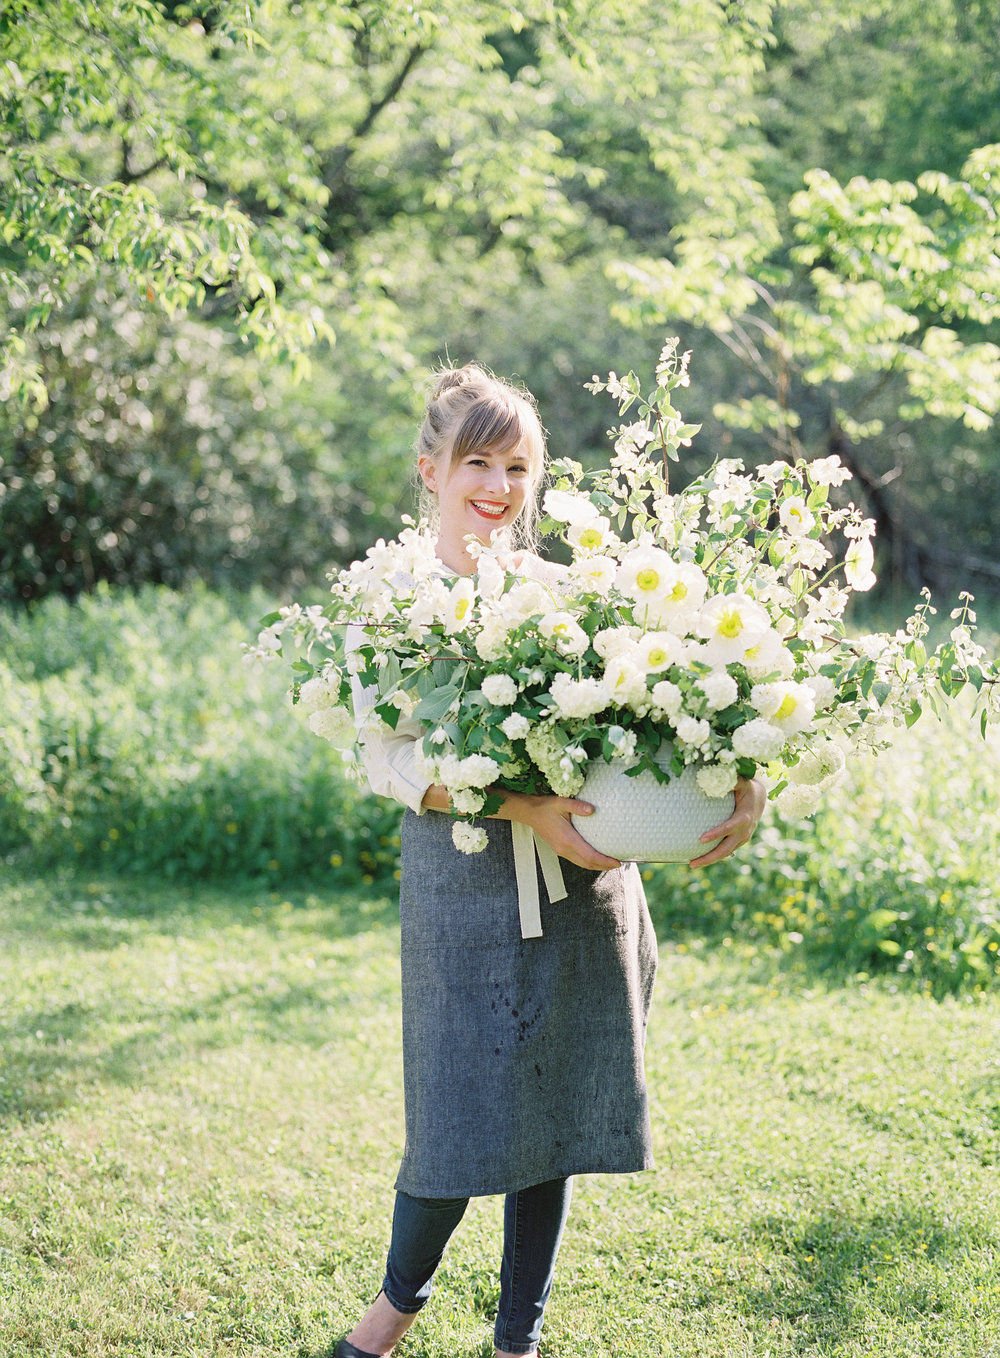 "ABOUT KELLY PERRY - Before you could find her empowering professionals in the floral industry full-time, Kelly started a tiny weekly flower subscription that she grew into her own successful boutique floral design business, Philosophy Flowers.Kelly Perry's life with flowers—and her joy of teaching other professionals—naturally stems from her time working as a corporate event planner after she graduated from college, studying fashion, interior design, event planning, entrepreneurship, and education. Of her educational background, Kelly reminisces, ""The first lesson I taught in my education class was called 'The Elements and Principles of Design.' I practically floated out of that class, and I remember thinking, 'If I could find a way to just teach that lesson for the rest of my life, I would be so happy.' It combined everything I loved: fashion, interior design, business, event design, art, and education."